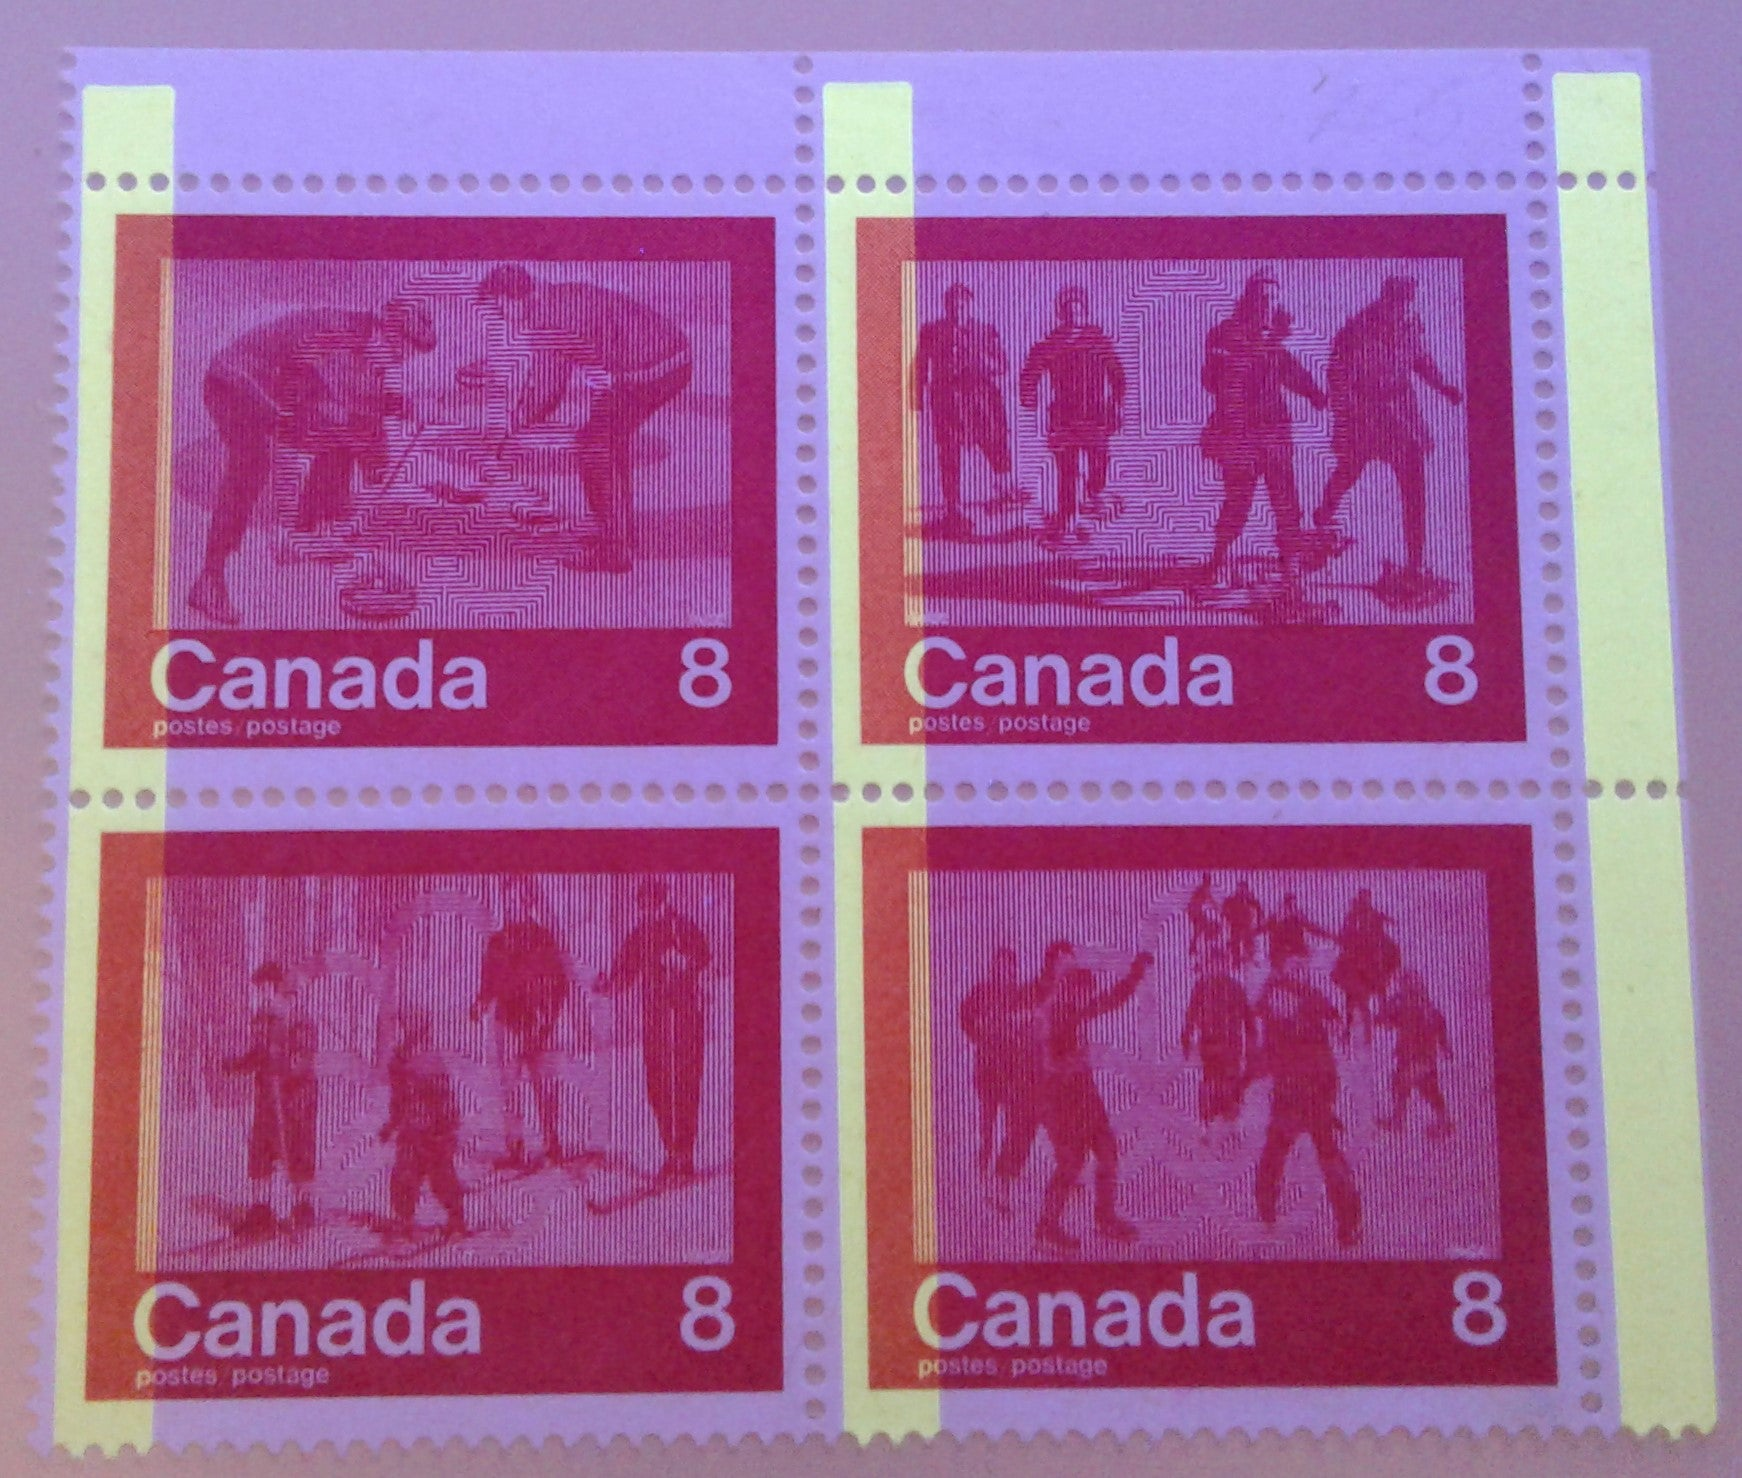 Canada #647a, 8c Red Winter Sports, 1974 Olympics Issue, a Fine NH UR Field Stock Block Showing 1-Bar Tagging Error